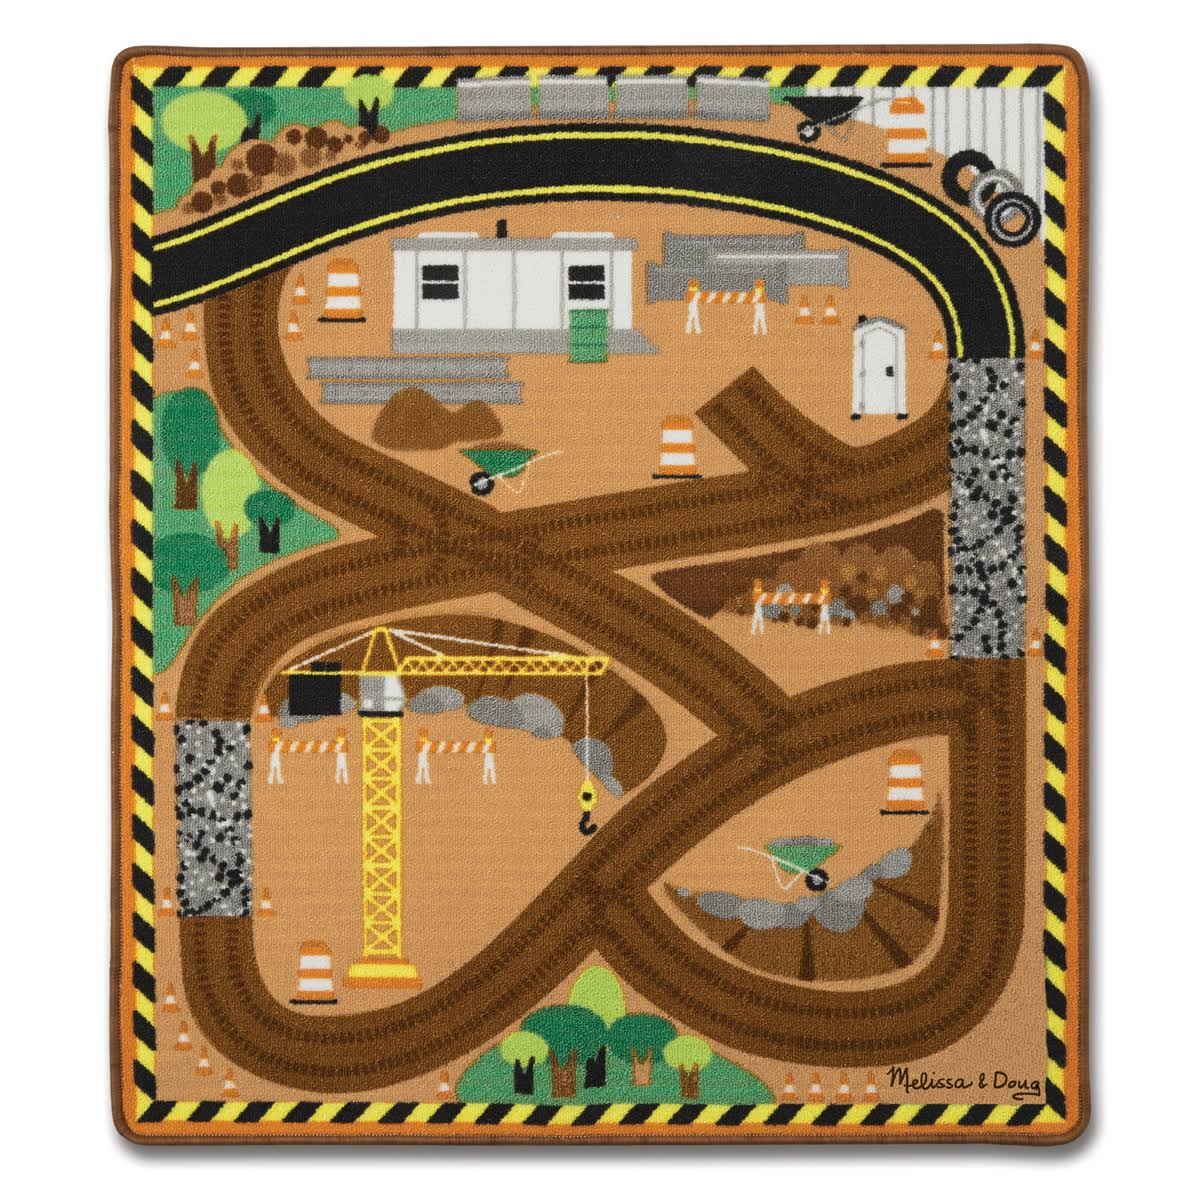 Melissa and Doug Construction Rug Playset